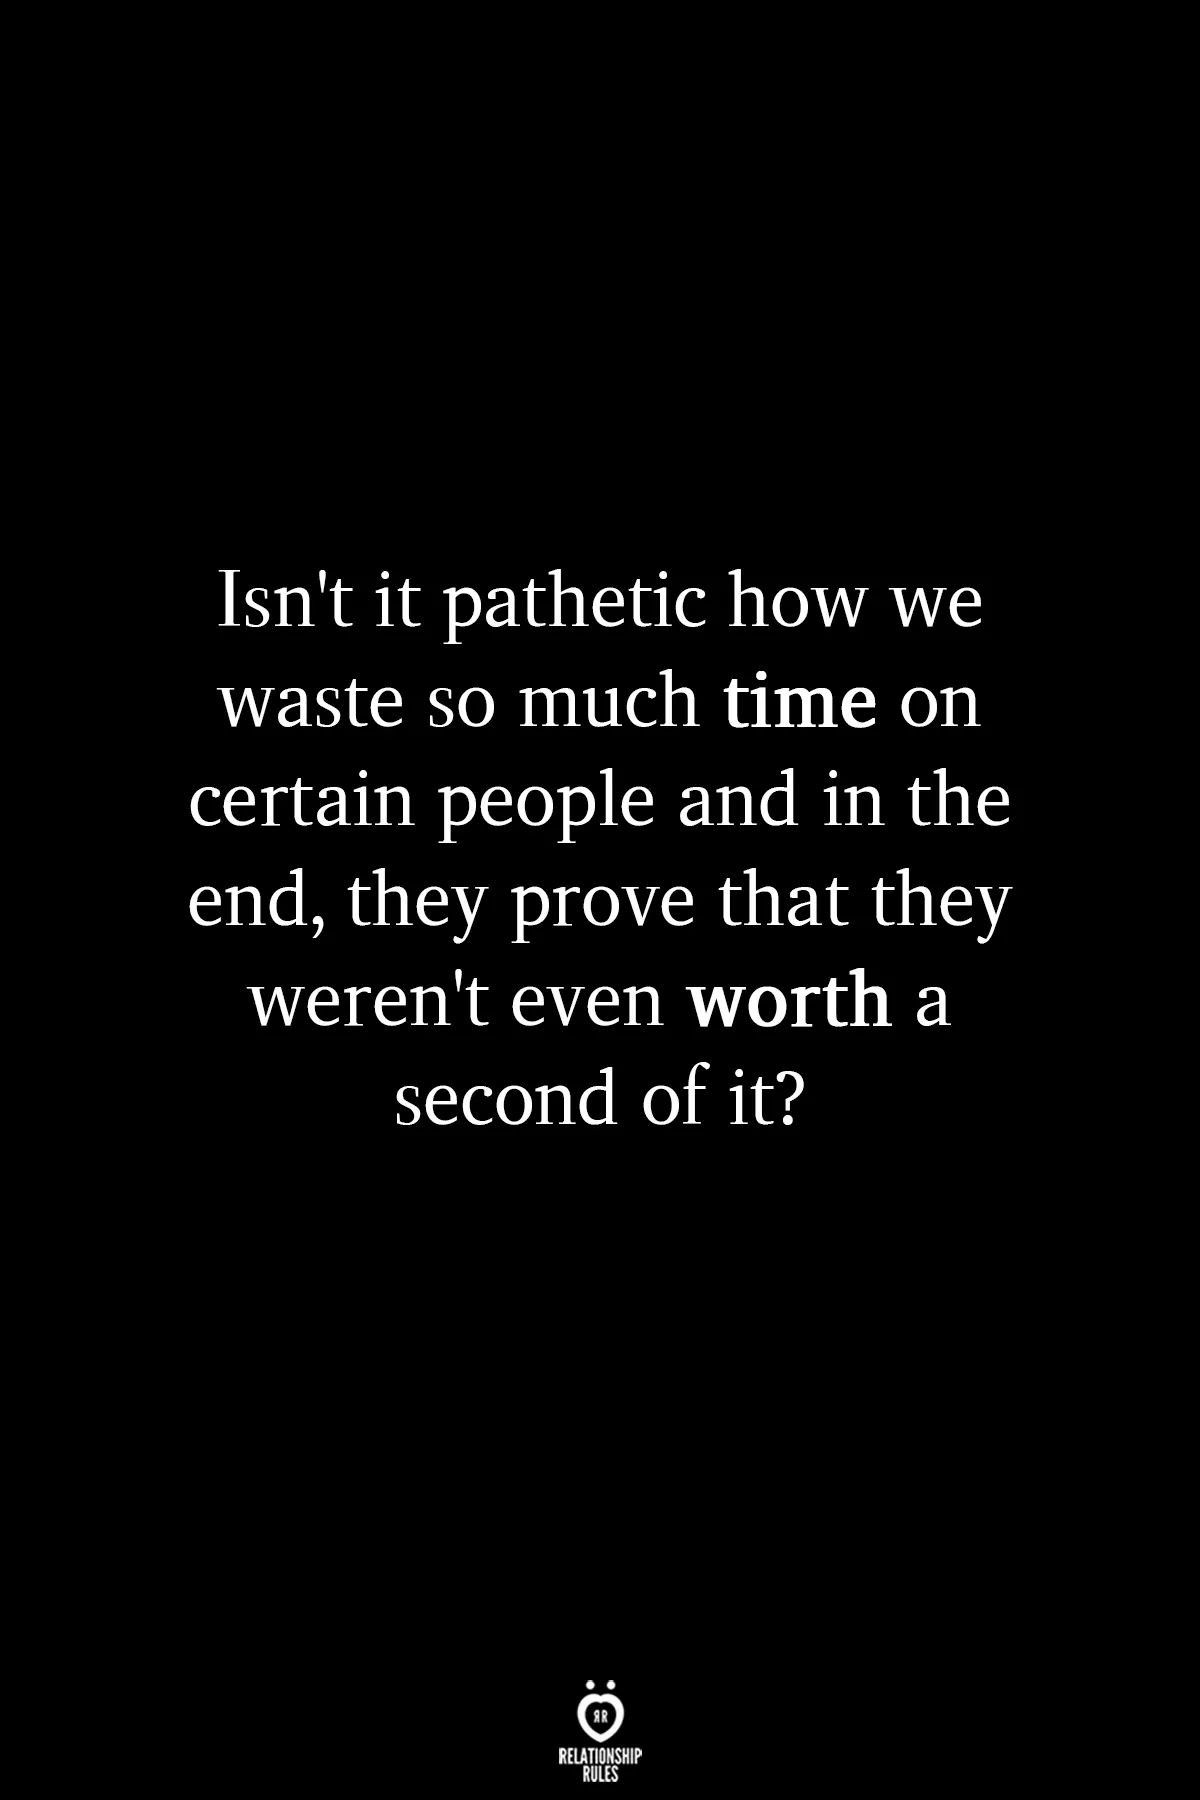 Relationship Rules Wasted Time Pathetic Quotes Me Time Quotes Betrayal Quotes